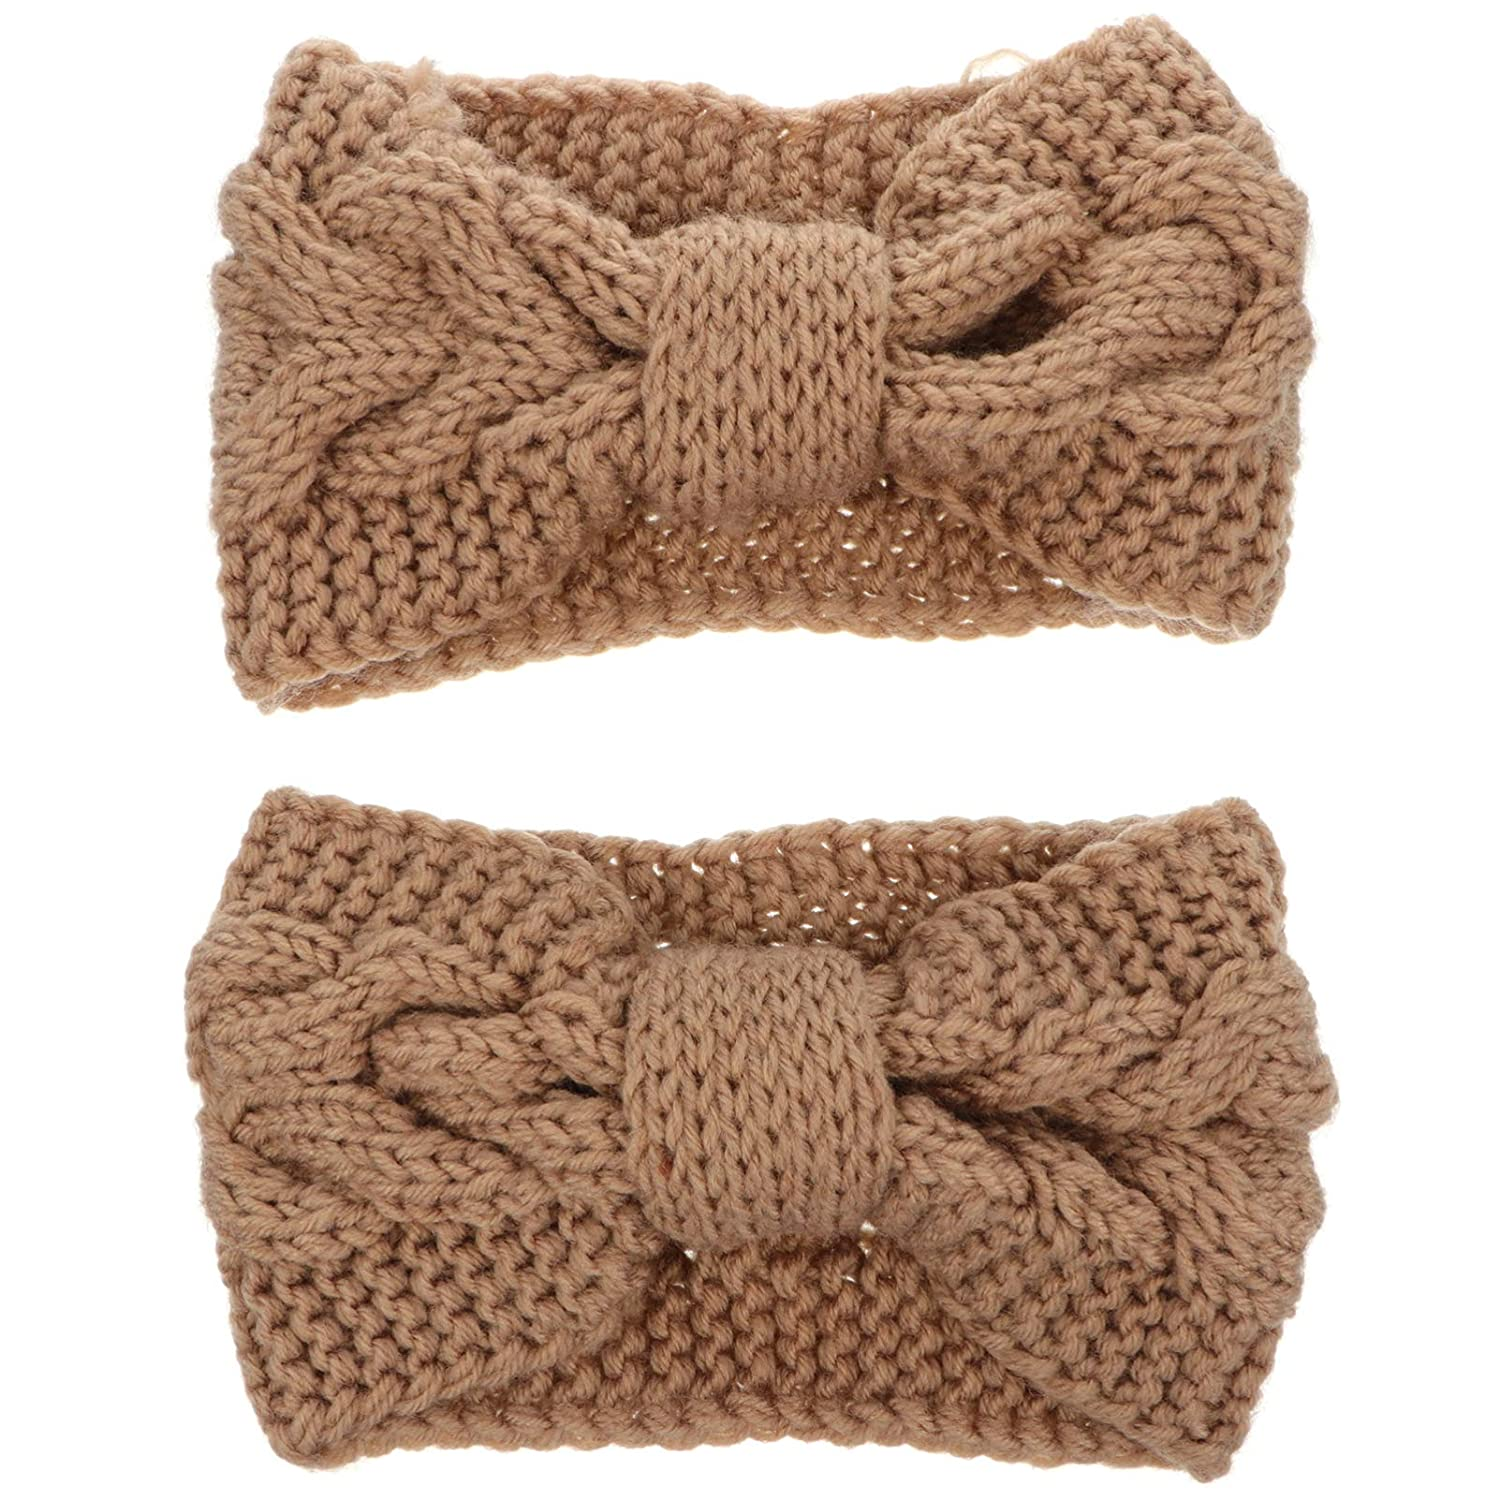 FRCOLOR 2pcs Knitted Headband Bowknot Cable Hairband with Buttons Winter Ear Warm Headwrap for Women (Camel)